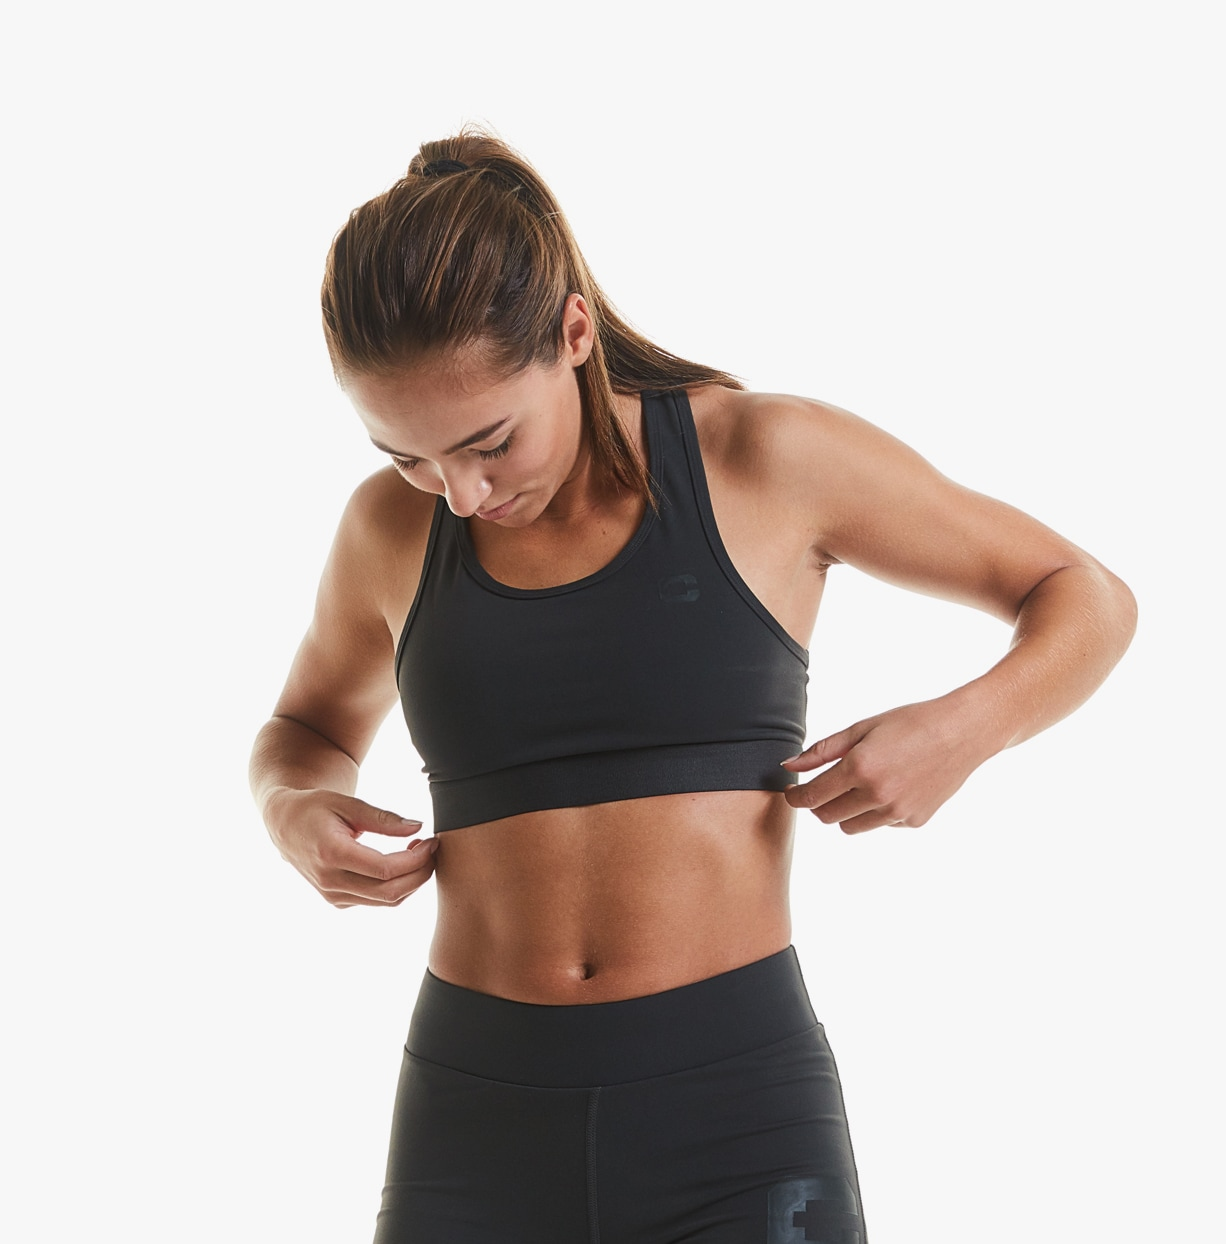 cln-rigid-sports-bra-shadow-detail